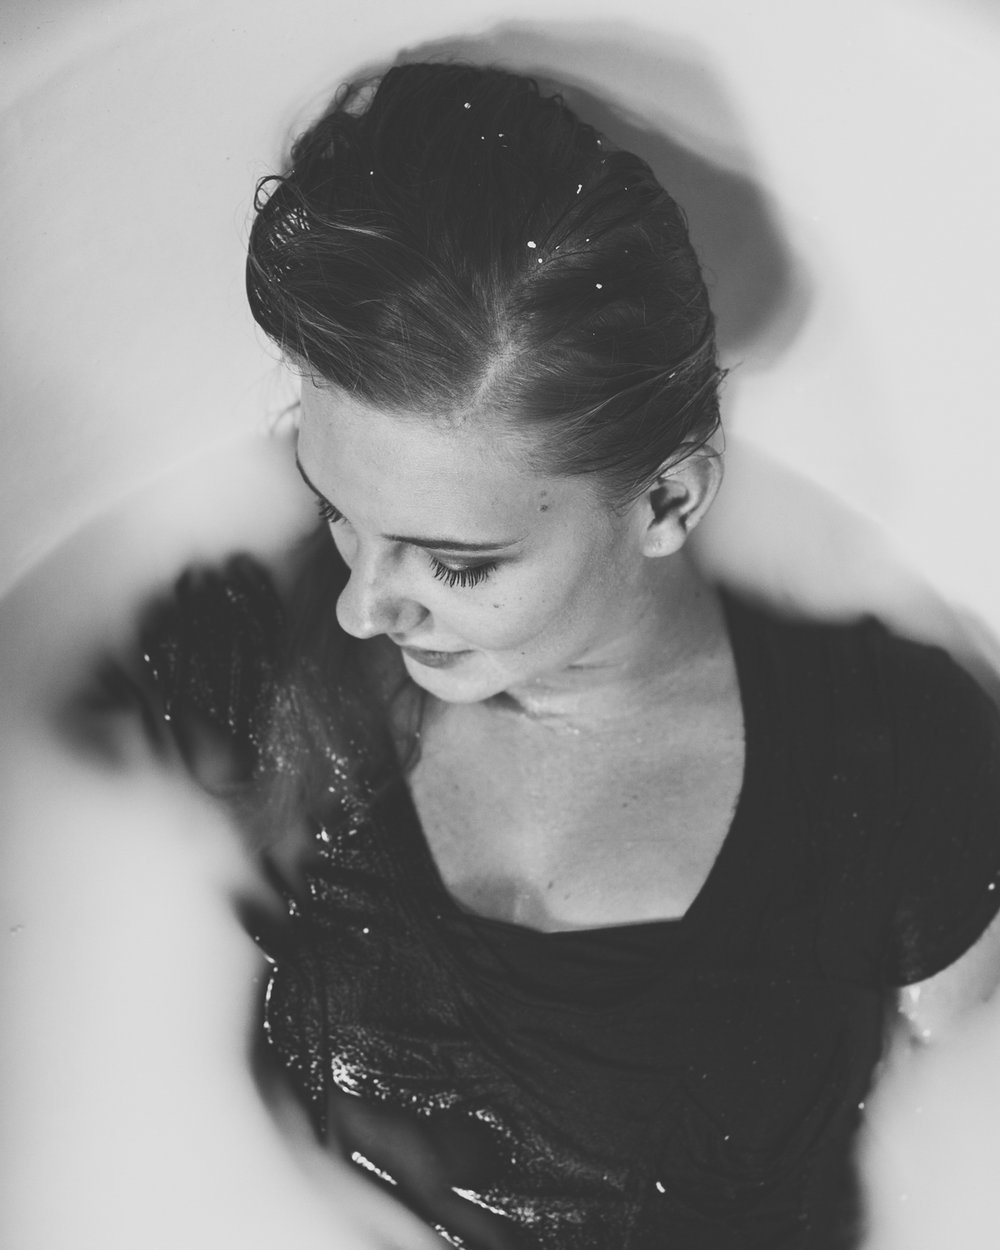 Milk bath- Creative portrait idea